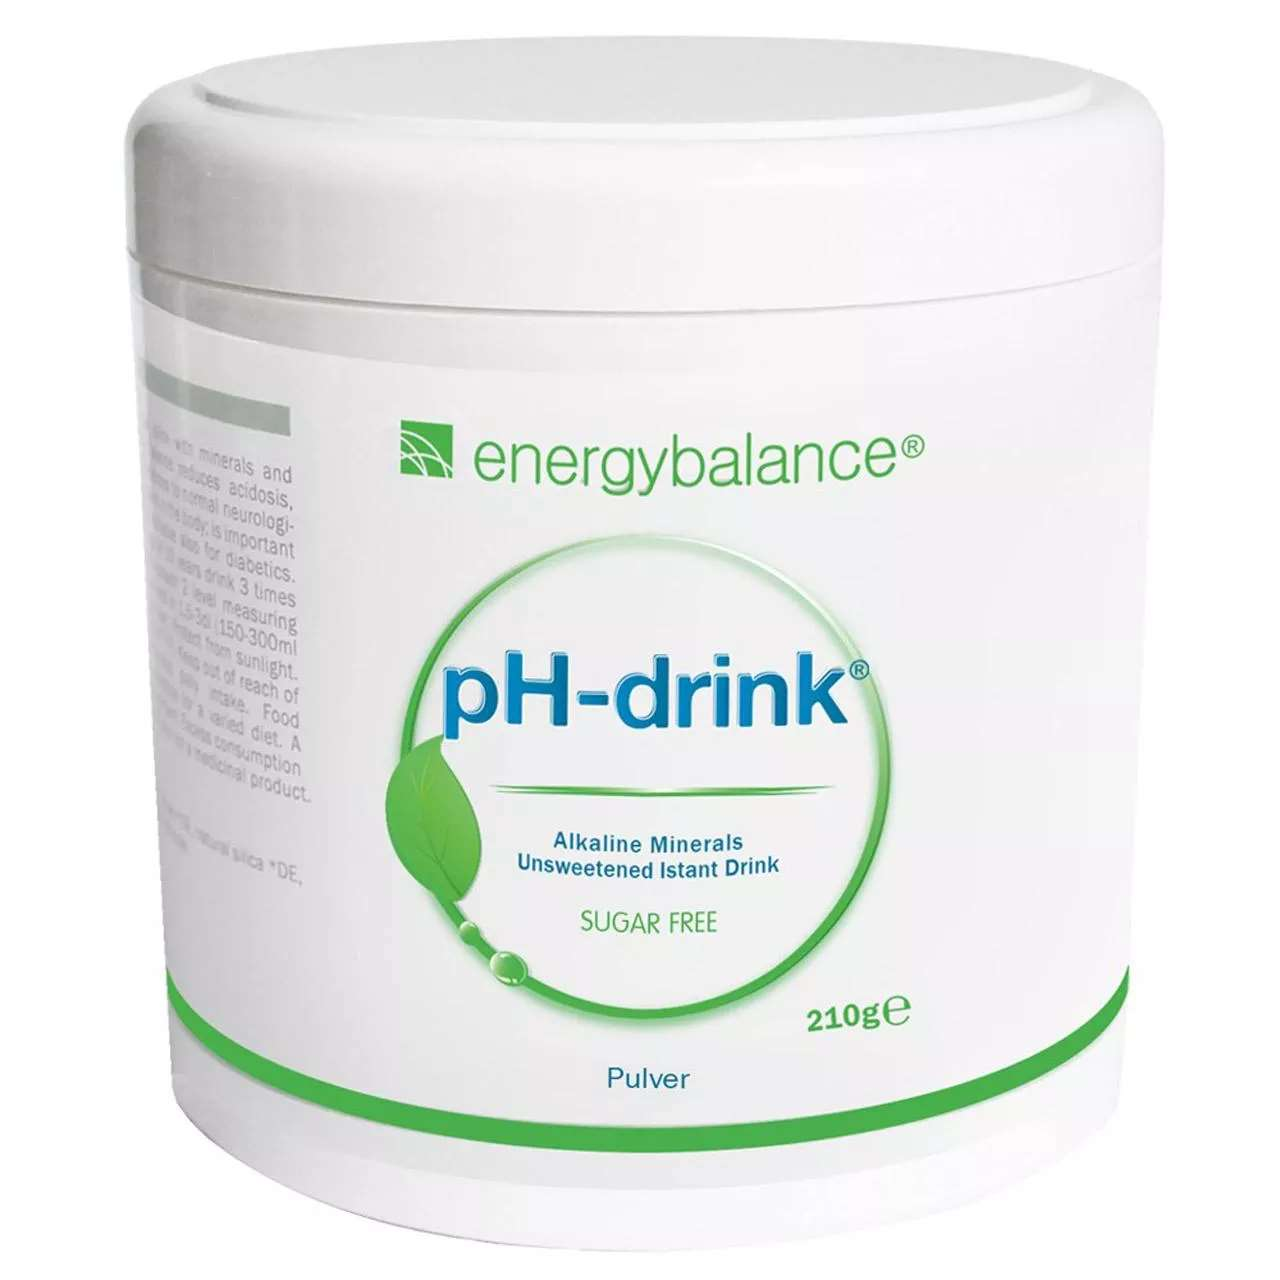 pH-drink Sugar-Free Basendrink, 210g Pulver